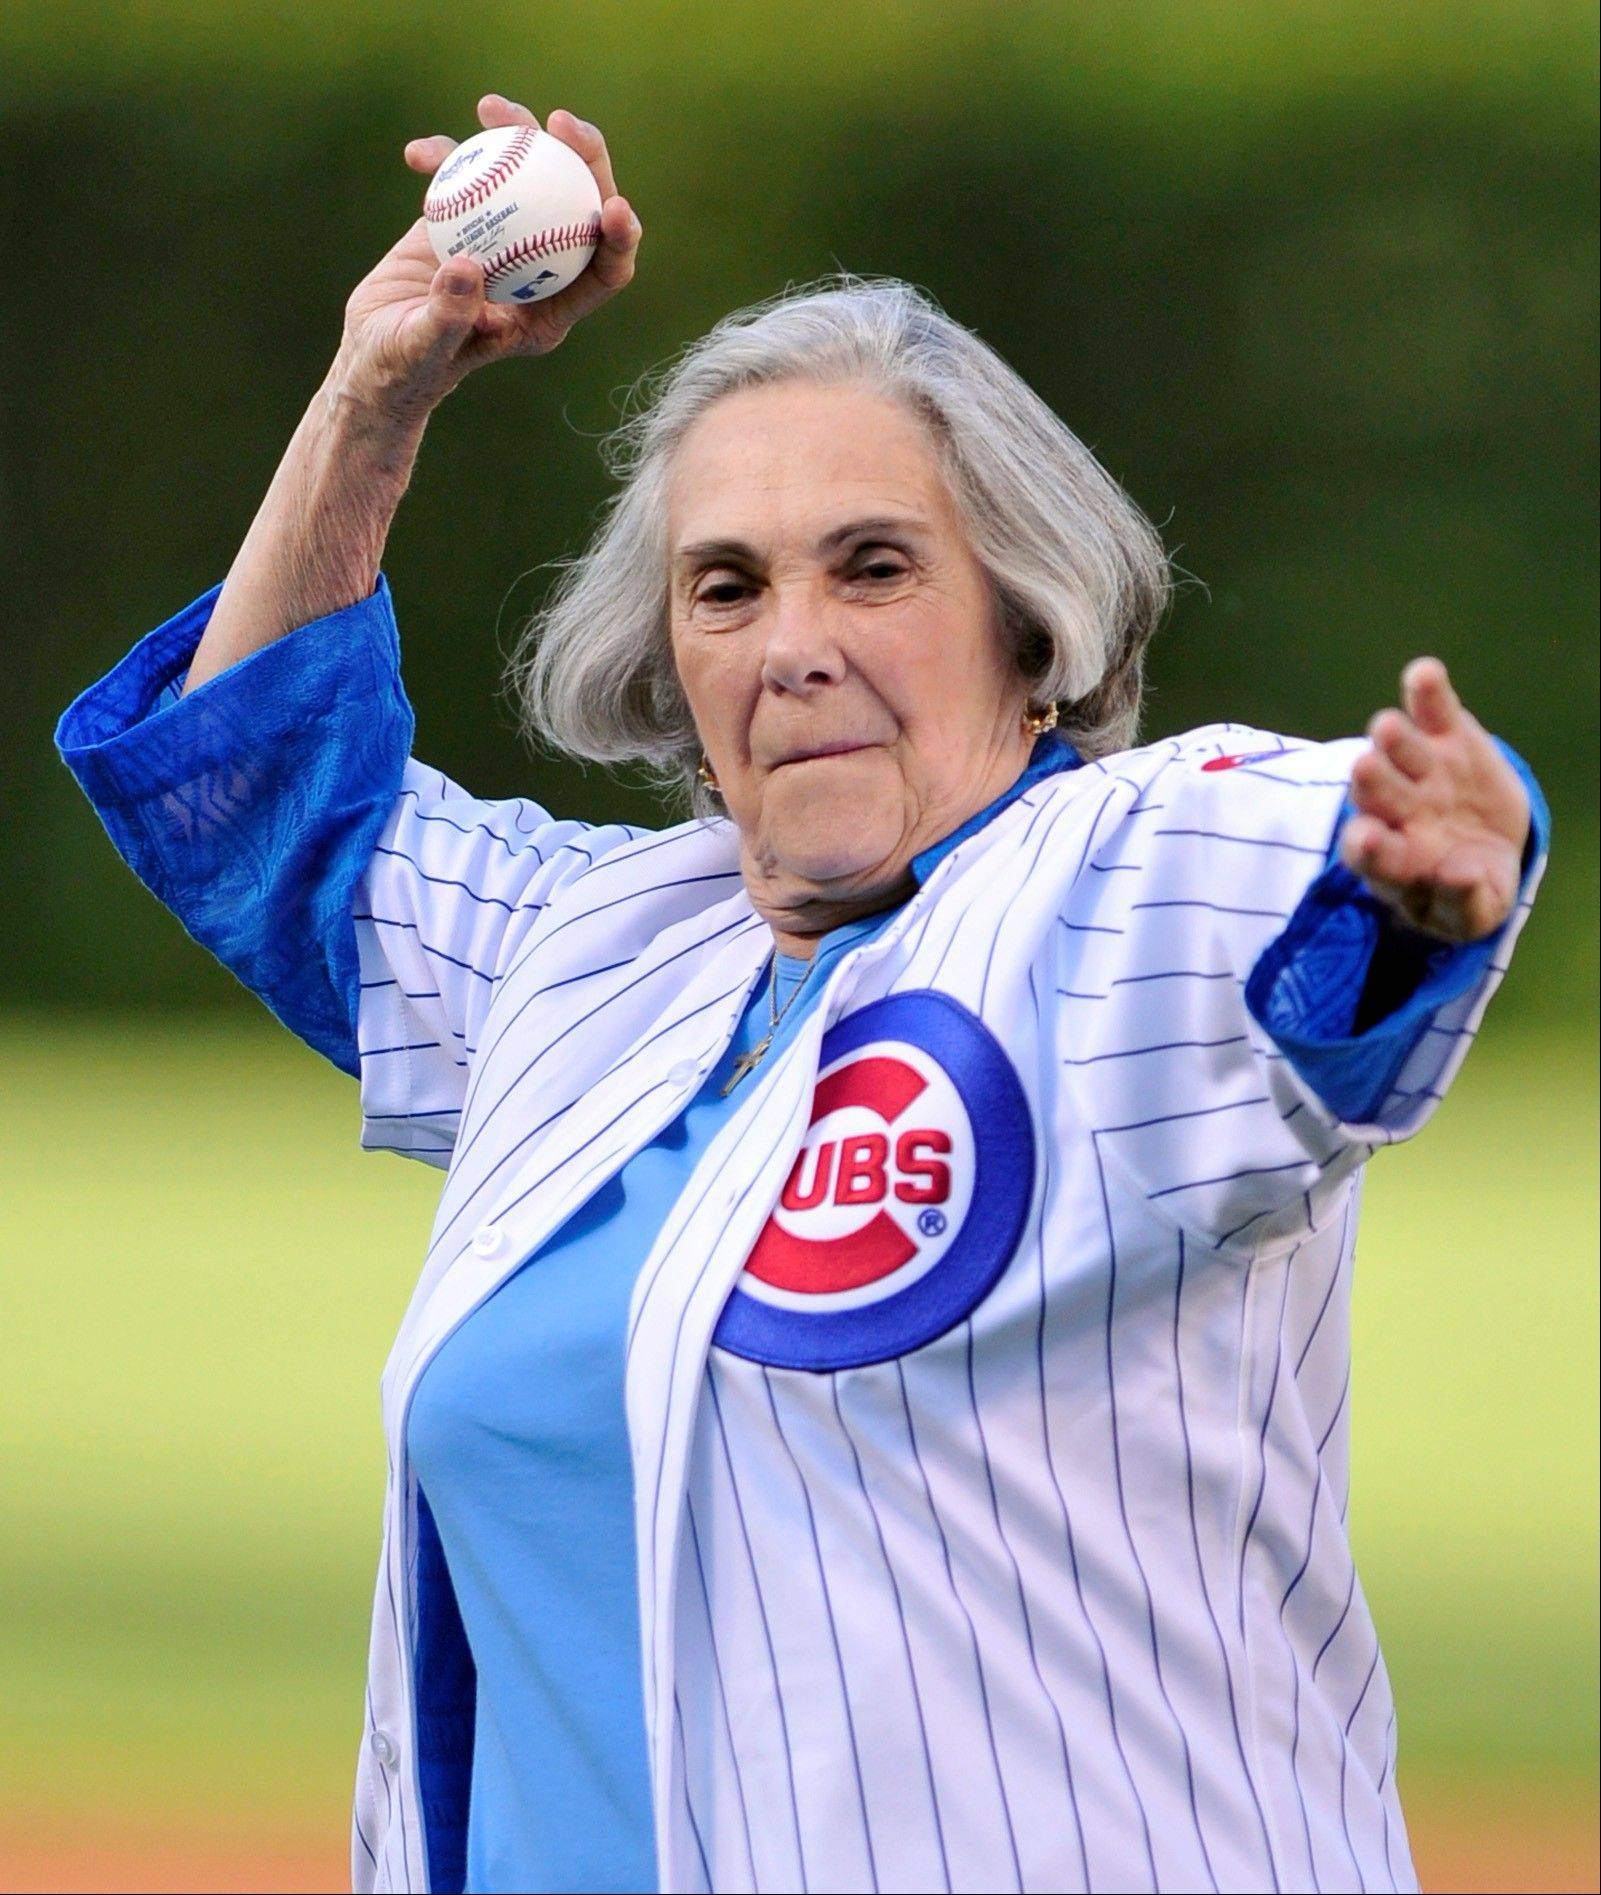 Dutchie Caray, widow of Cubs broadcaster Harry Caray, throws out a ceremonial first pitch before a baseball game between the St. Louis Cardinals and the Chicago Cubs in Chicago, Saturday, July 13, 2013.